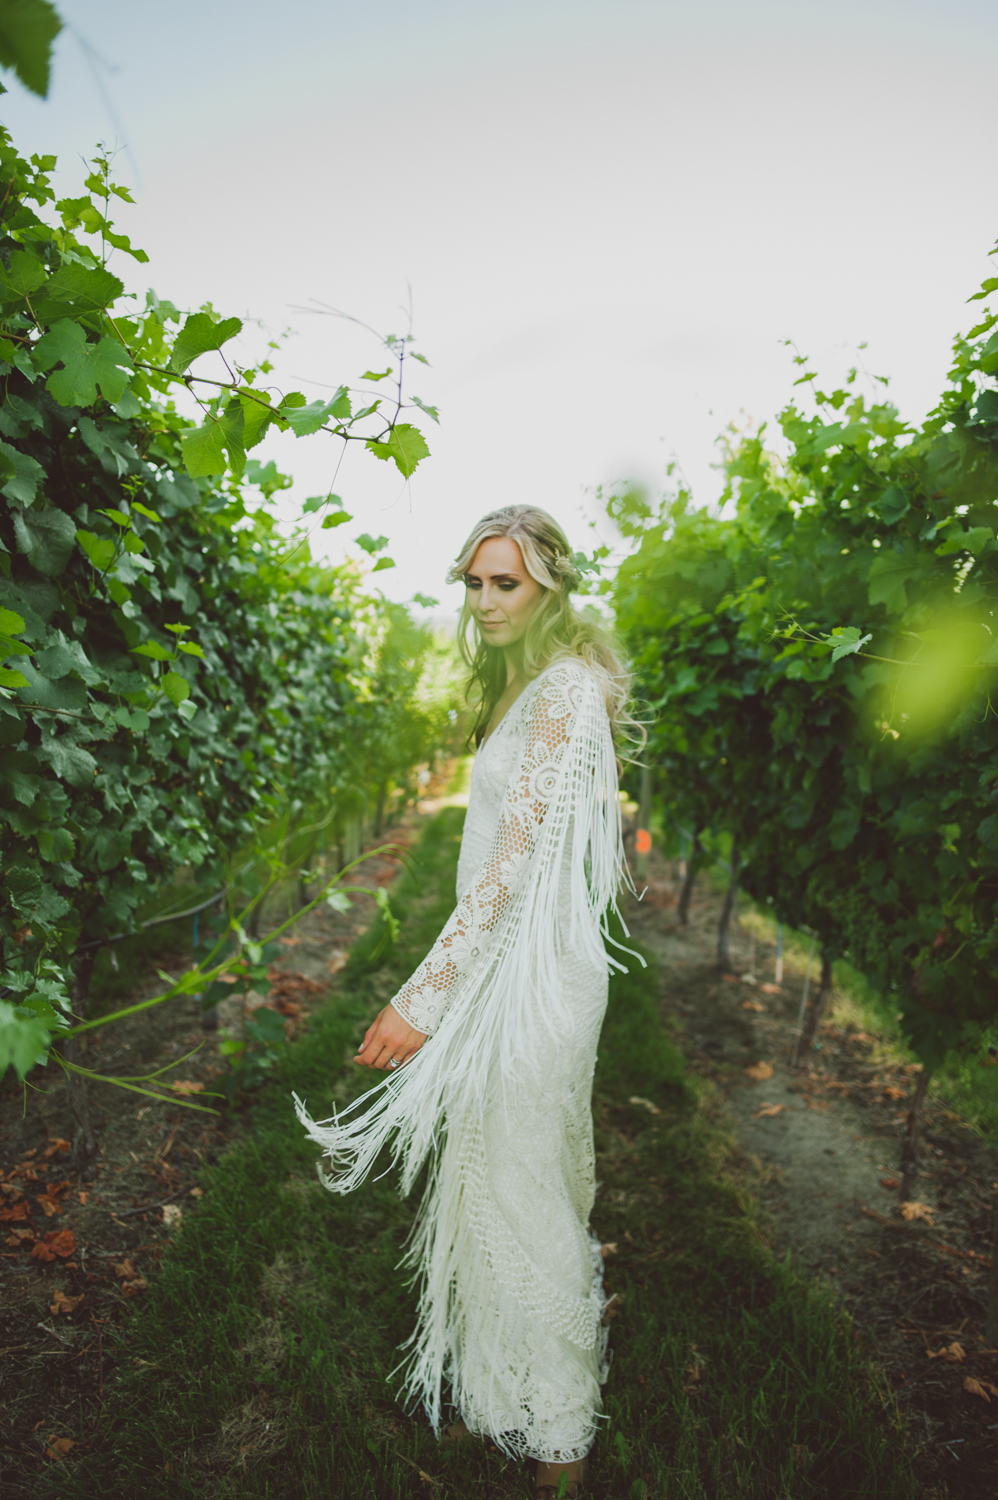 Kelowna Summer modern boho wedding-jessika hunter photo-35.JPG